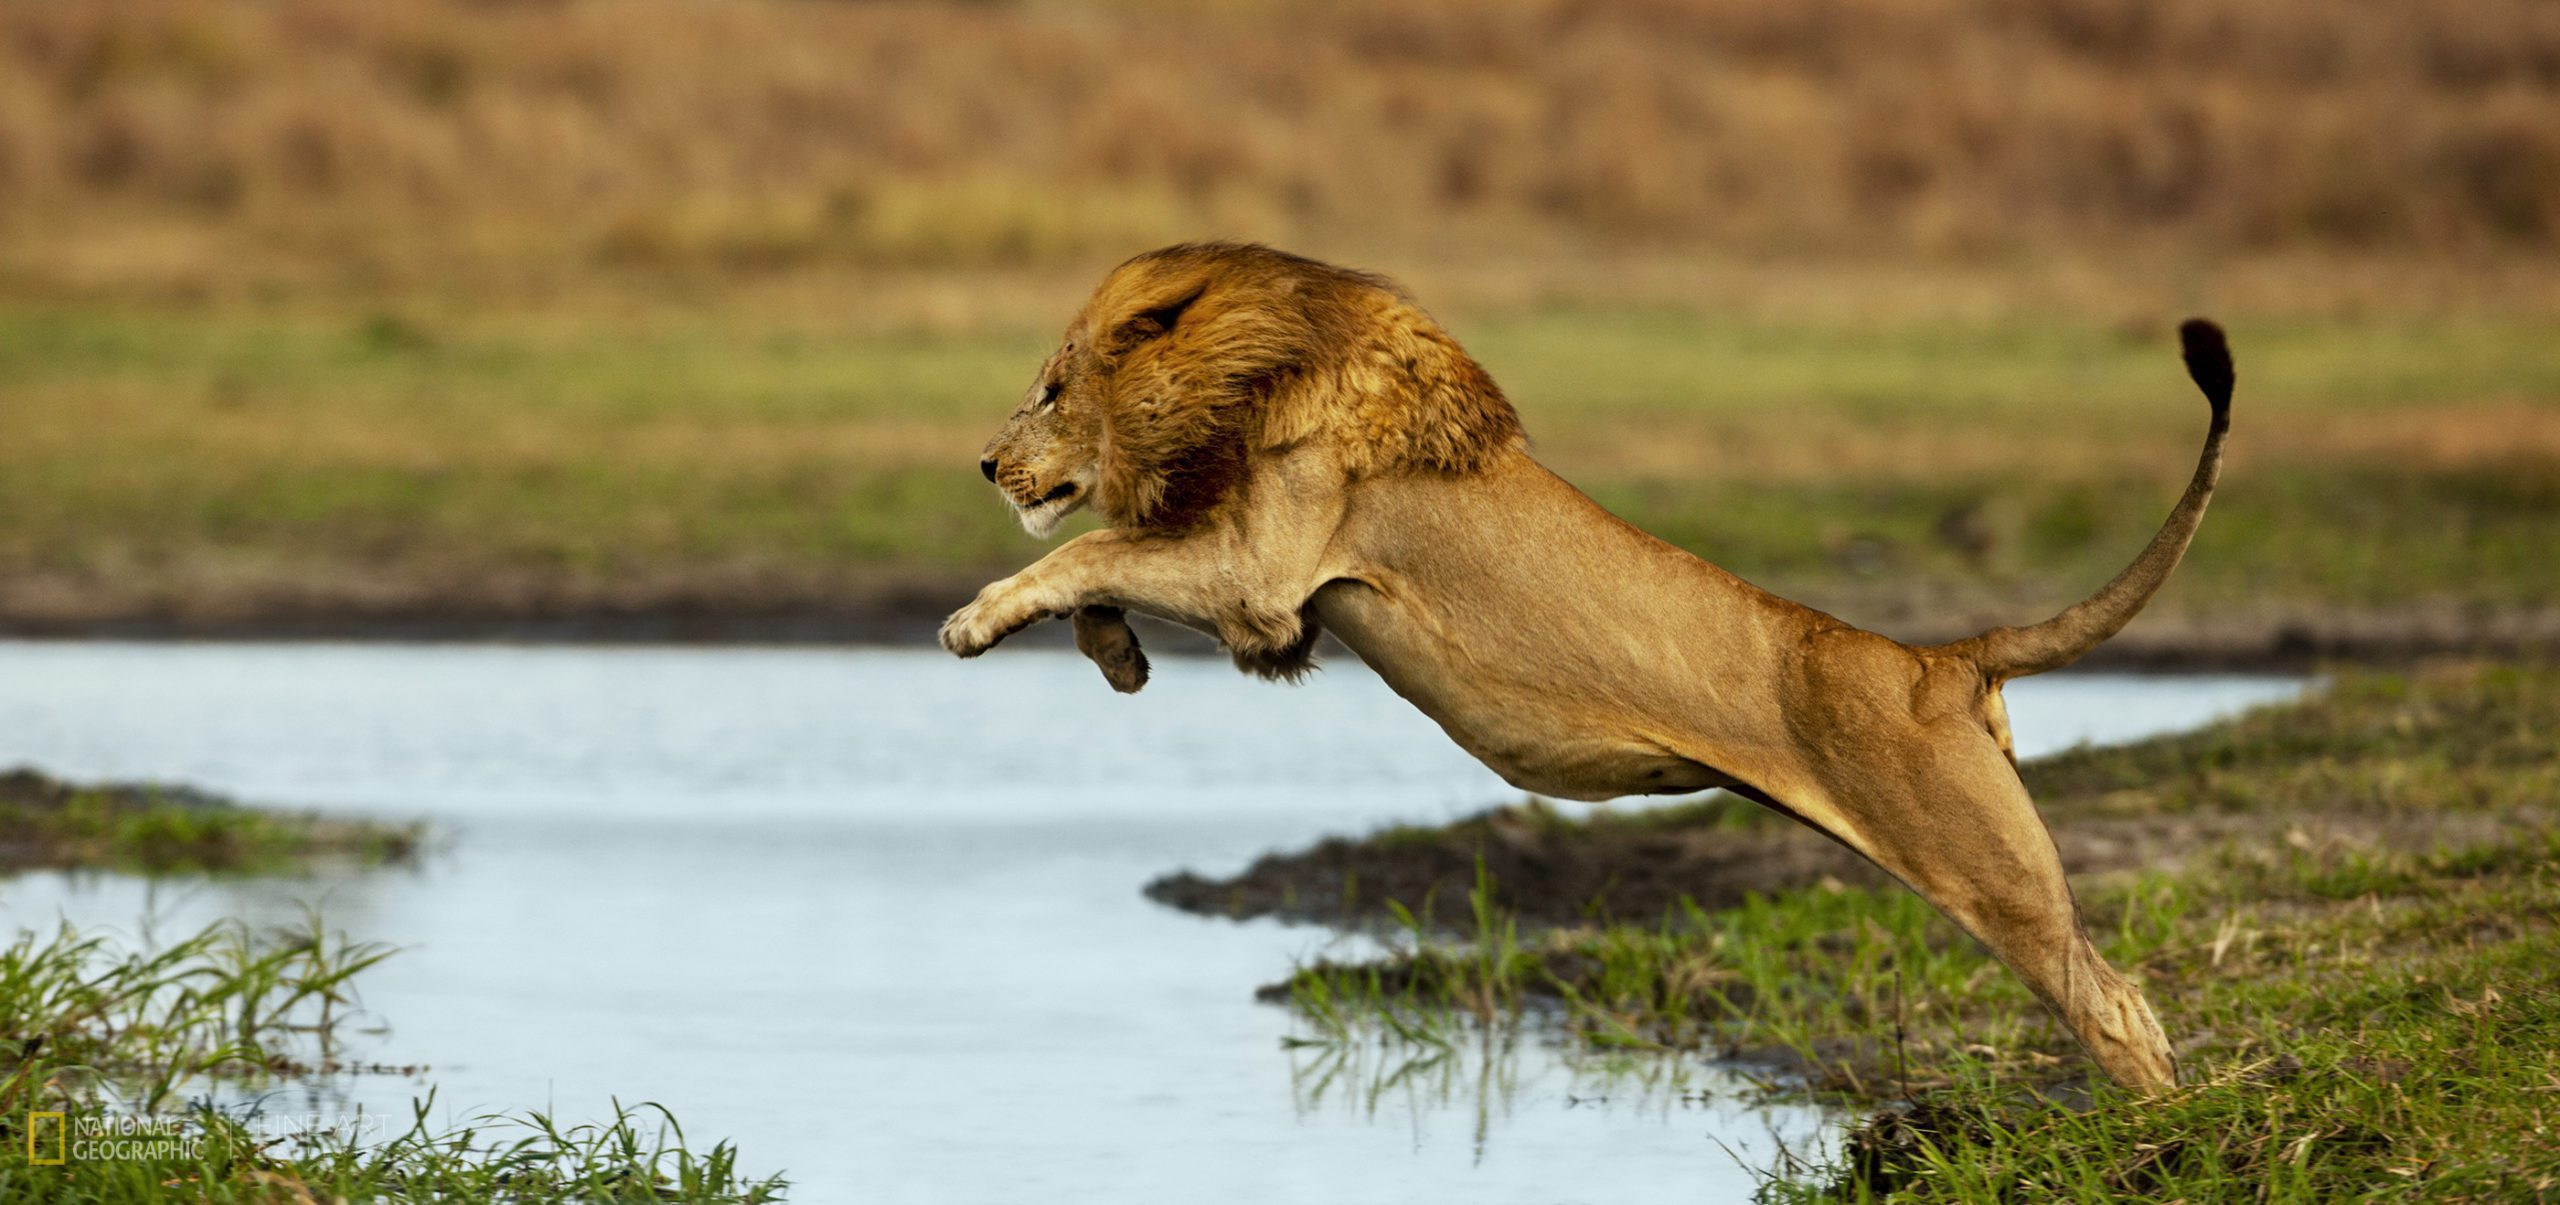 large male lion leaping across the water of the Okavango Delta on Pan-African safari